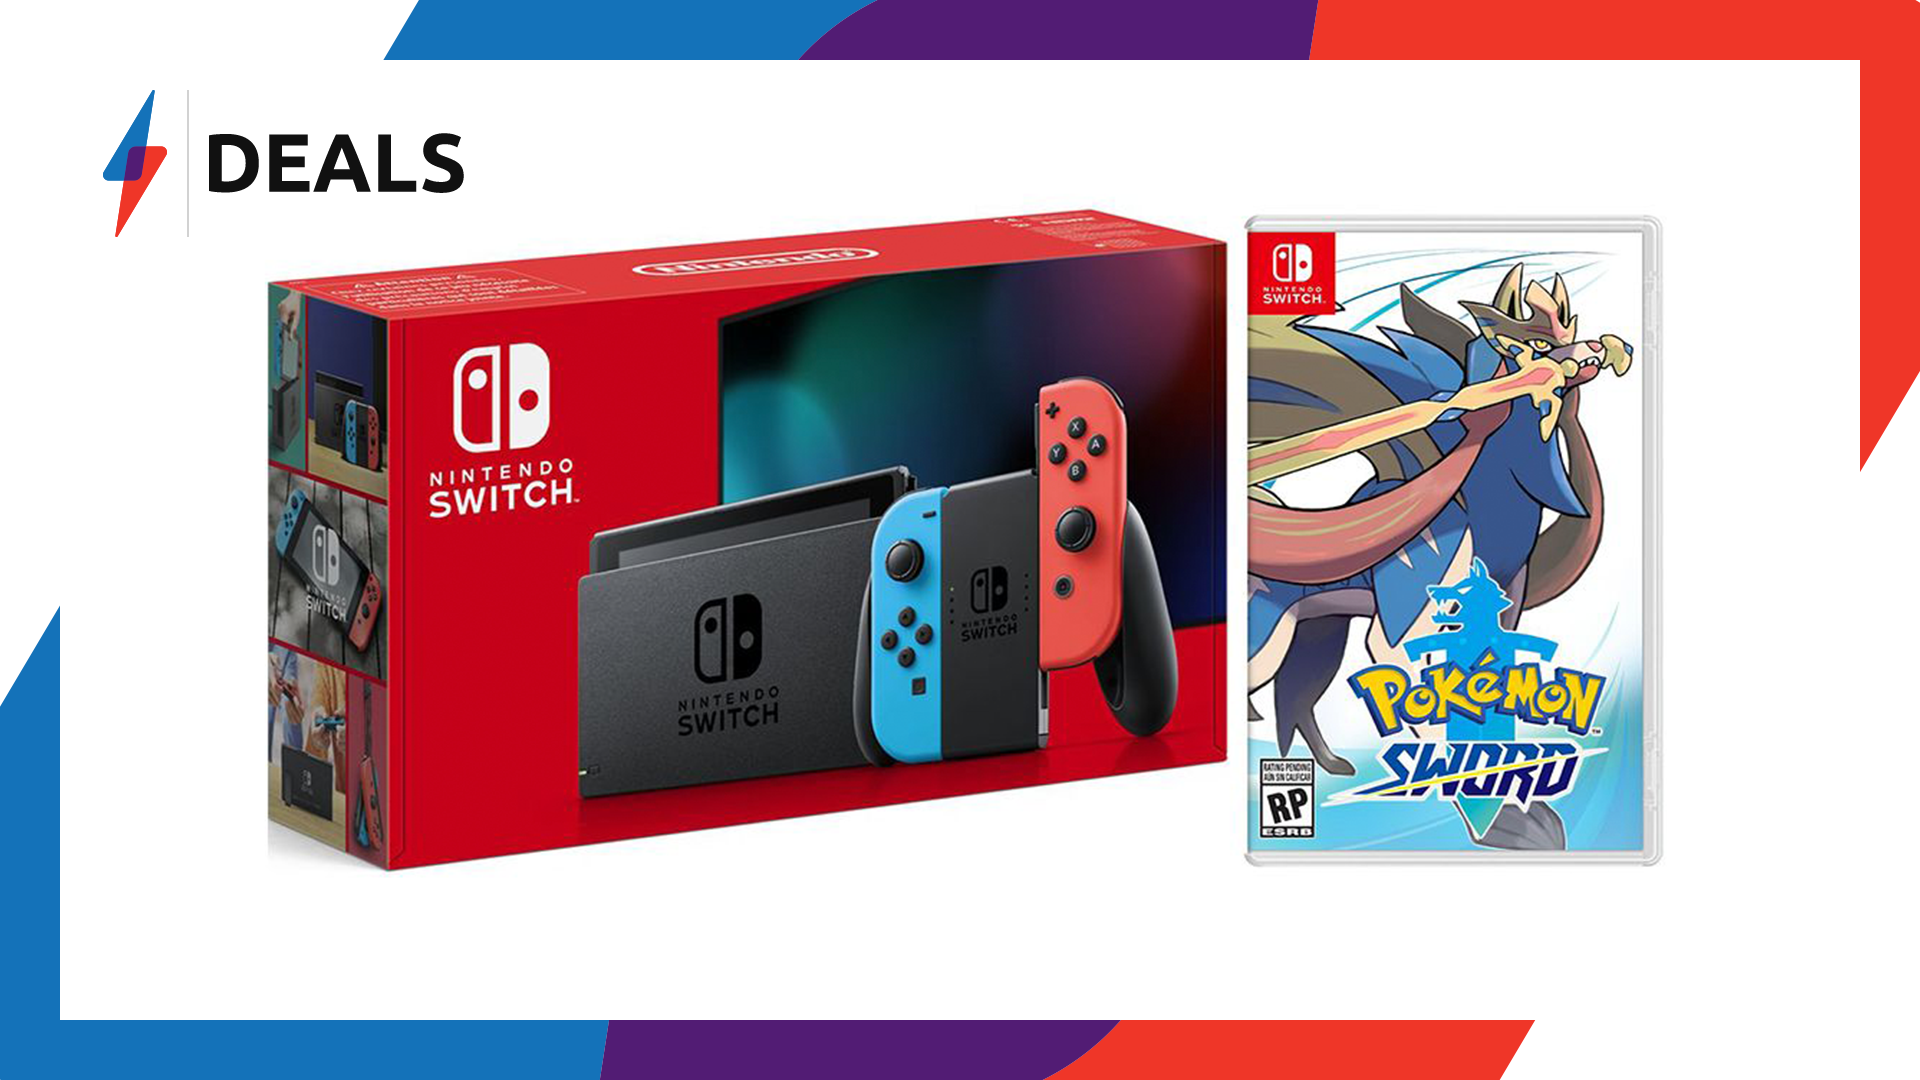 Get Pokemon Sword or Shield for free with this amazing early Black Friday Deal